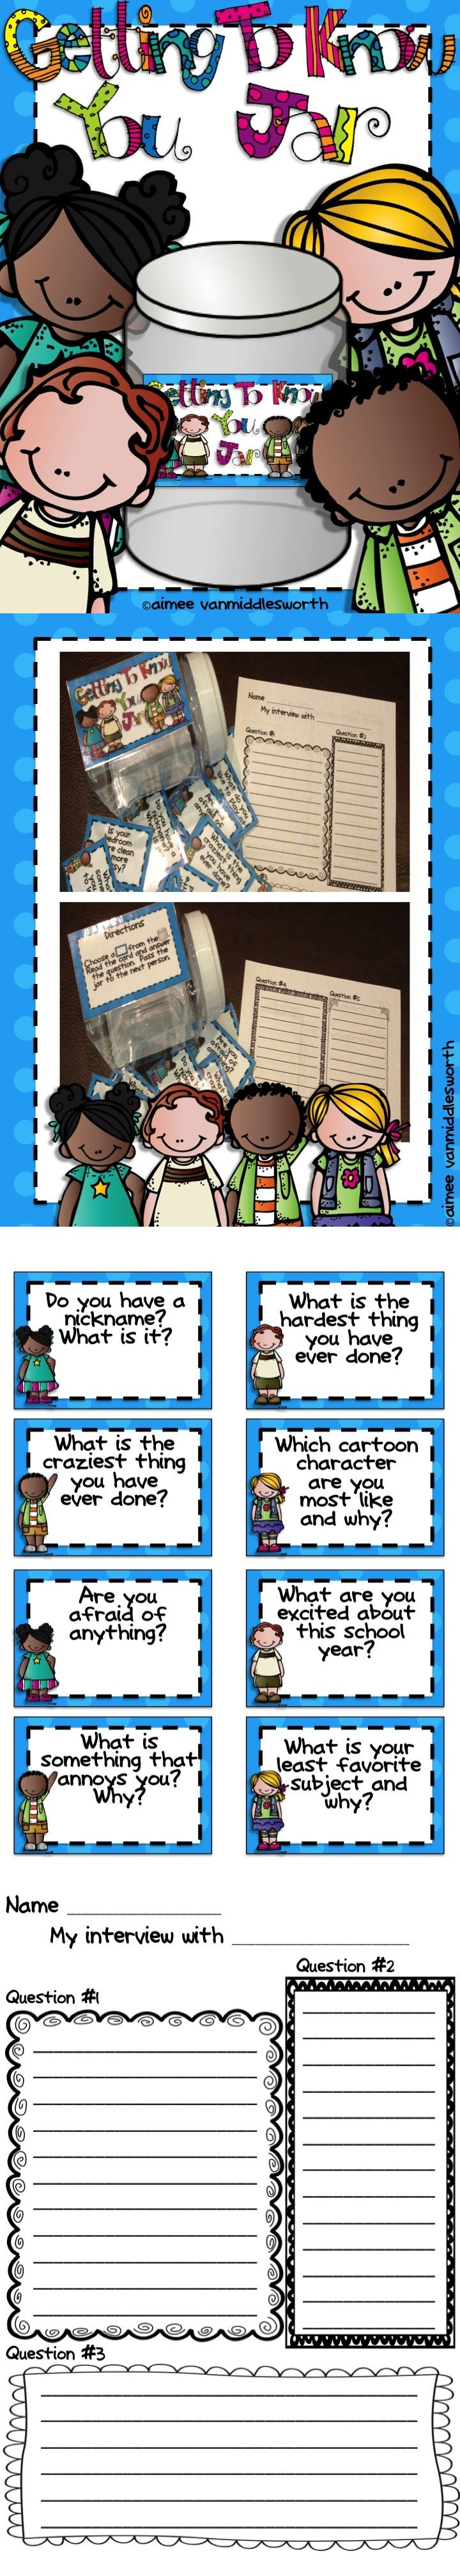 A great getting to know you activity for back to school! Use in literacy rotations. Give students the questions the day before so they can think about their answers